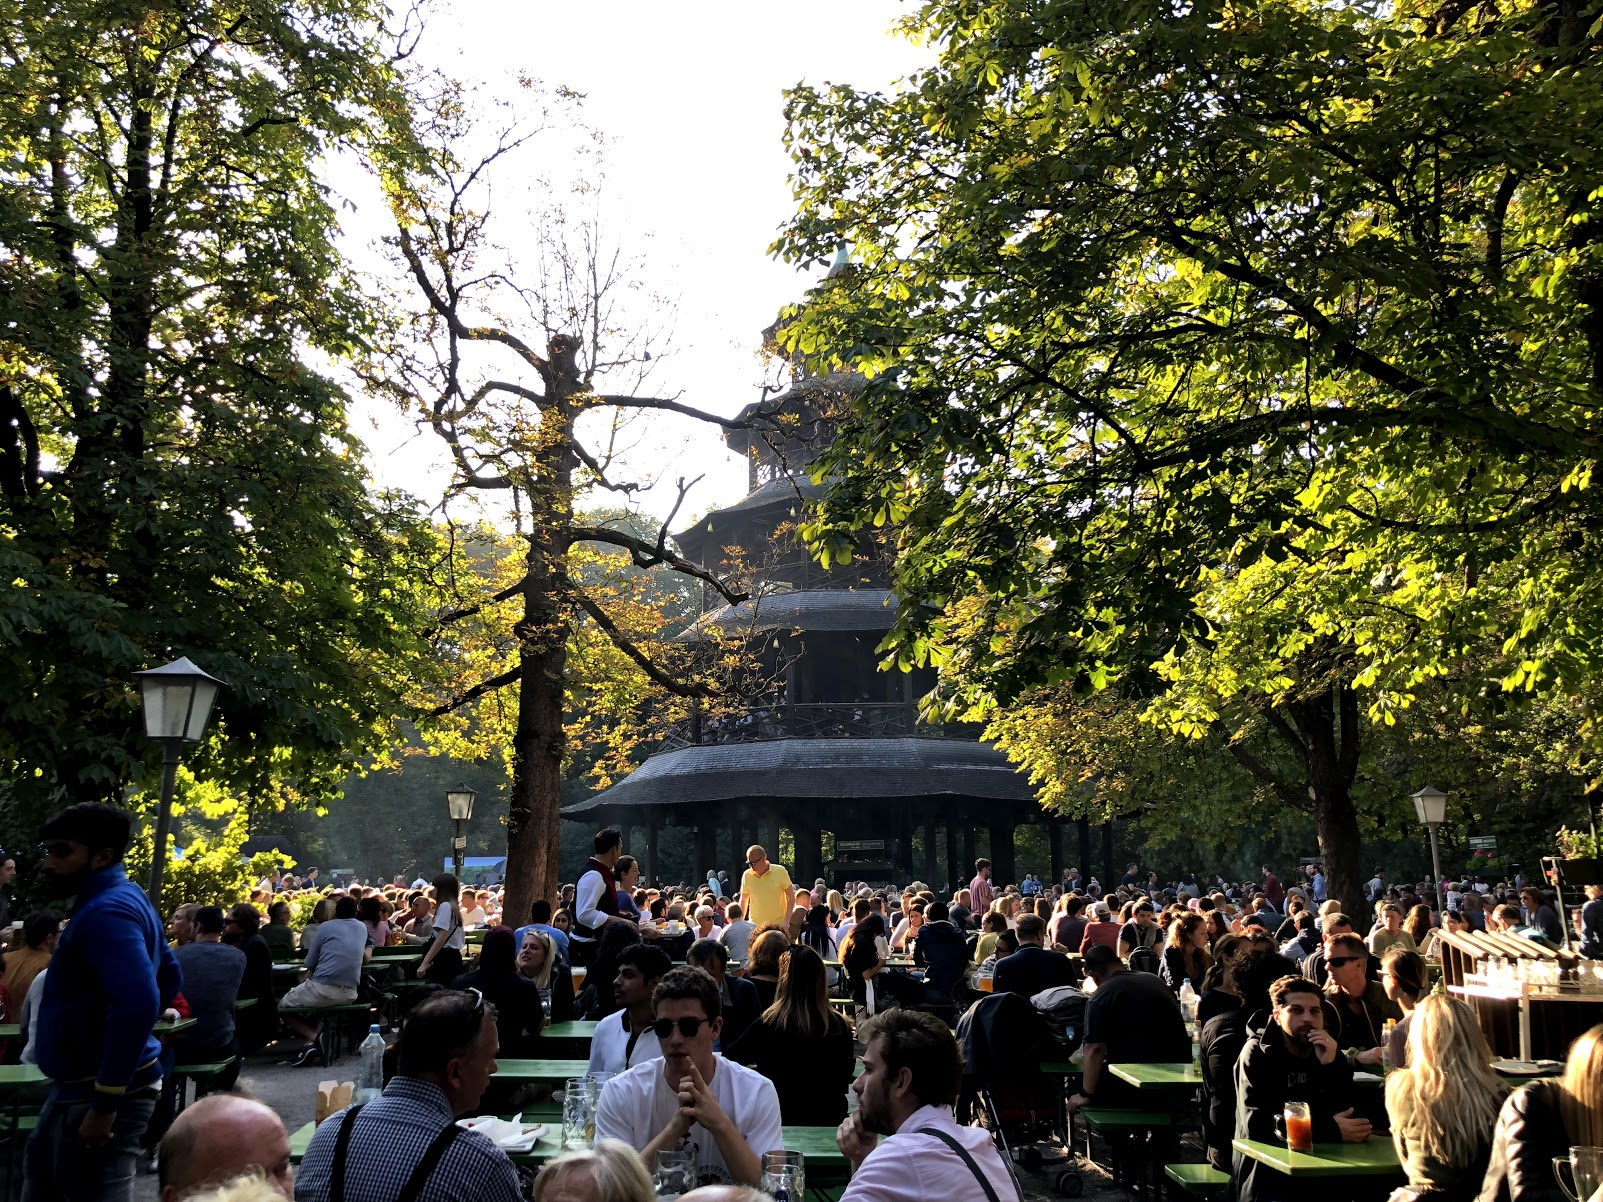 Beer Garden next to The Chinese Tower in the Munich English Garden